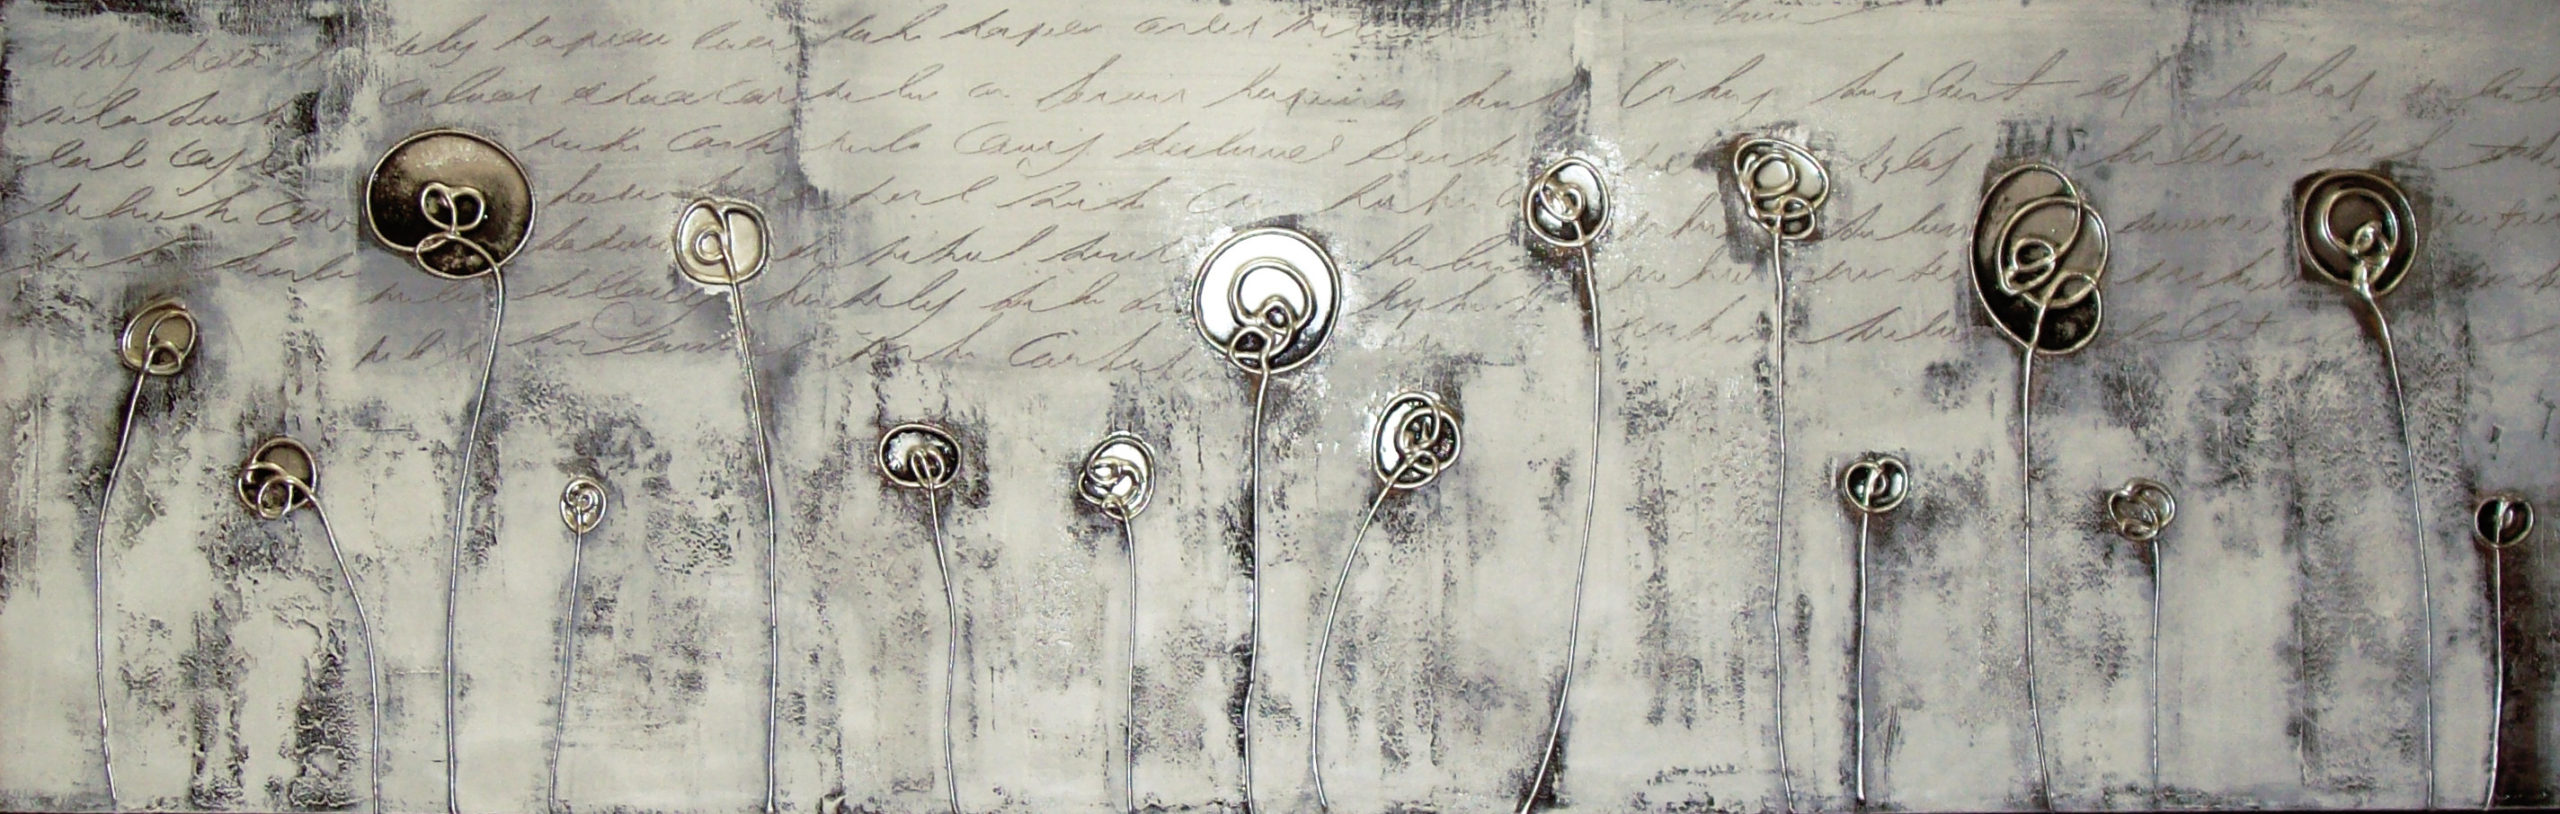 Vicky Sanders Abstract Botanical - Black and White Poppies